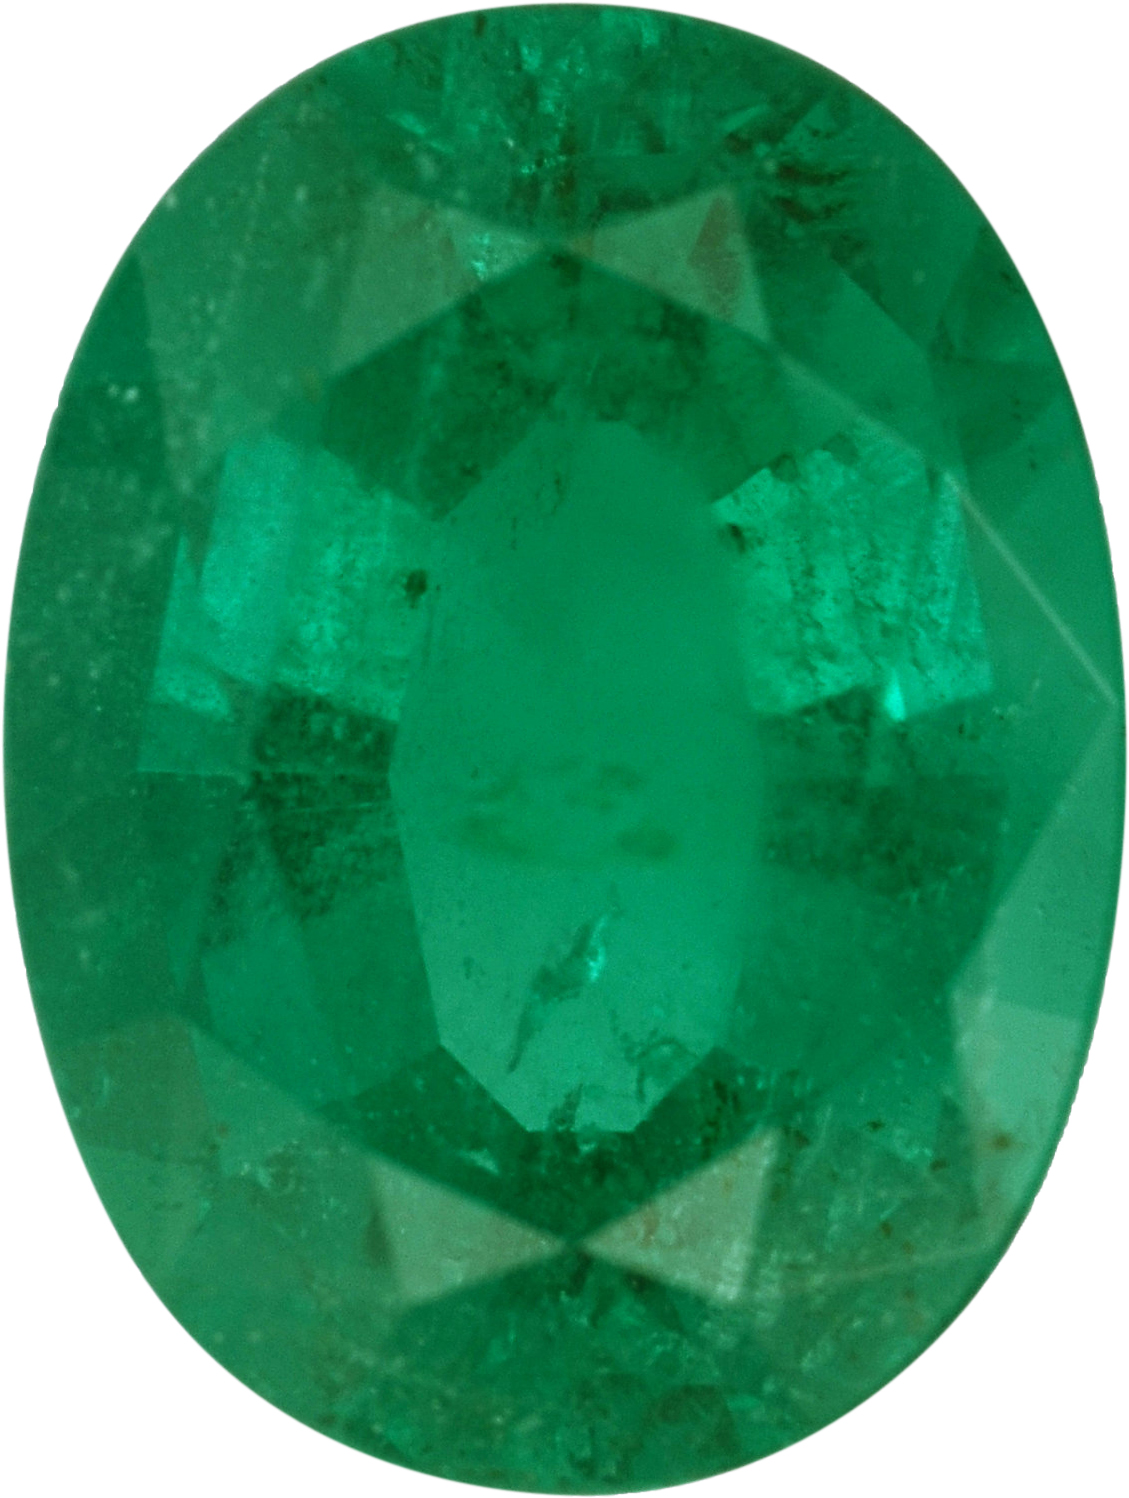 Good Looking Emerald Loose Gem in Oval Cut, Vibrant Blue Green, 8.03 x 6.07  mm, 1.25 Carats